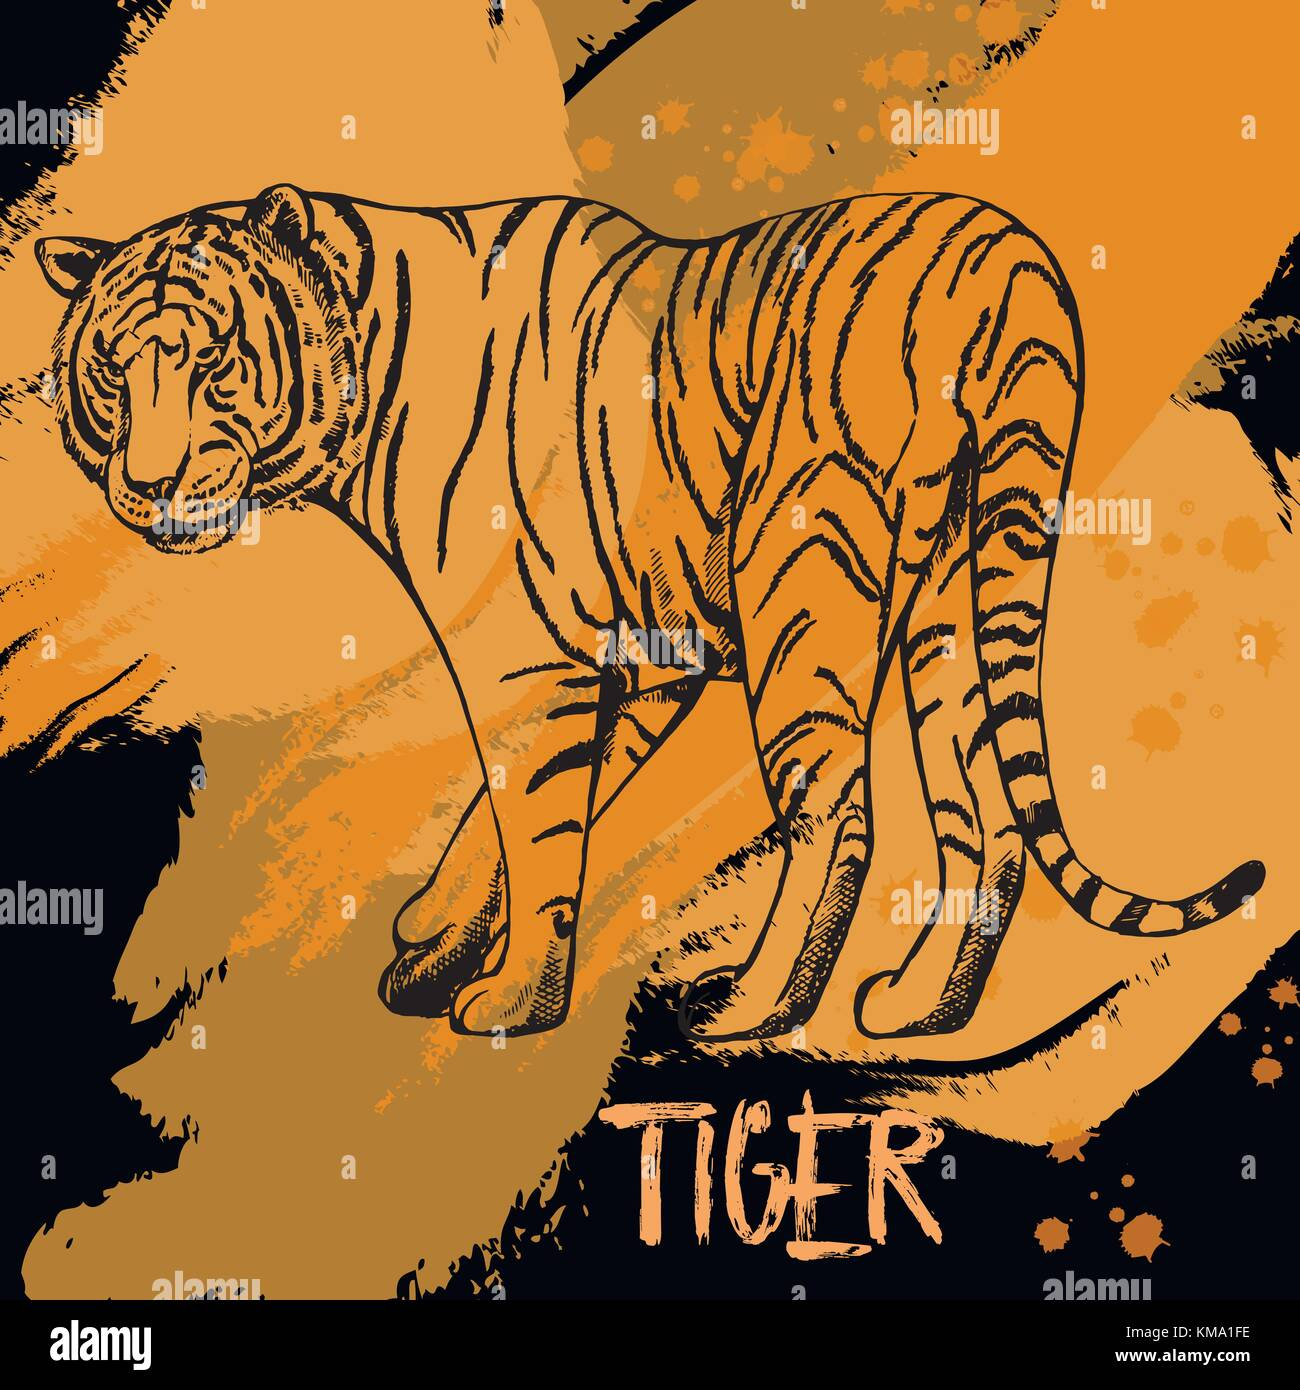 Hand drawn sketch style tiger. Isolated vector illustration. - Stock Image